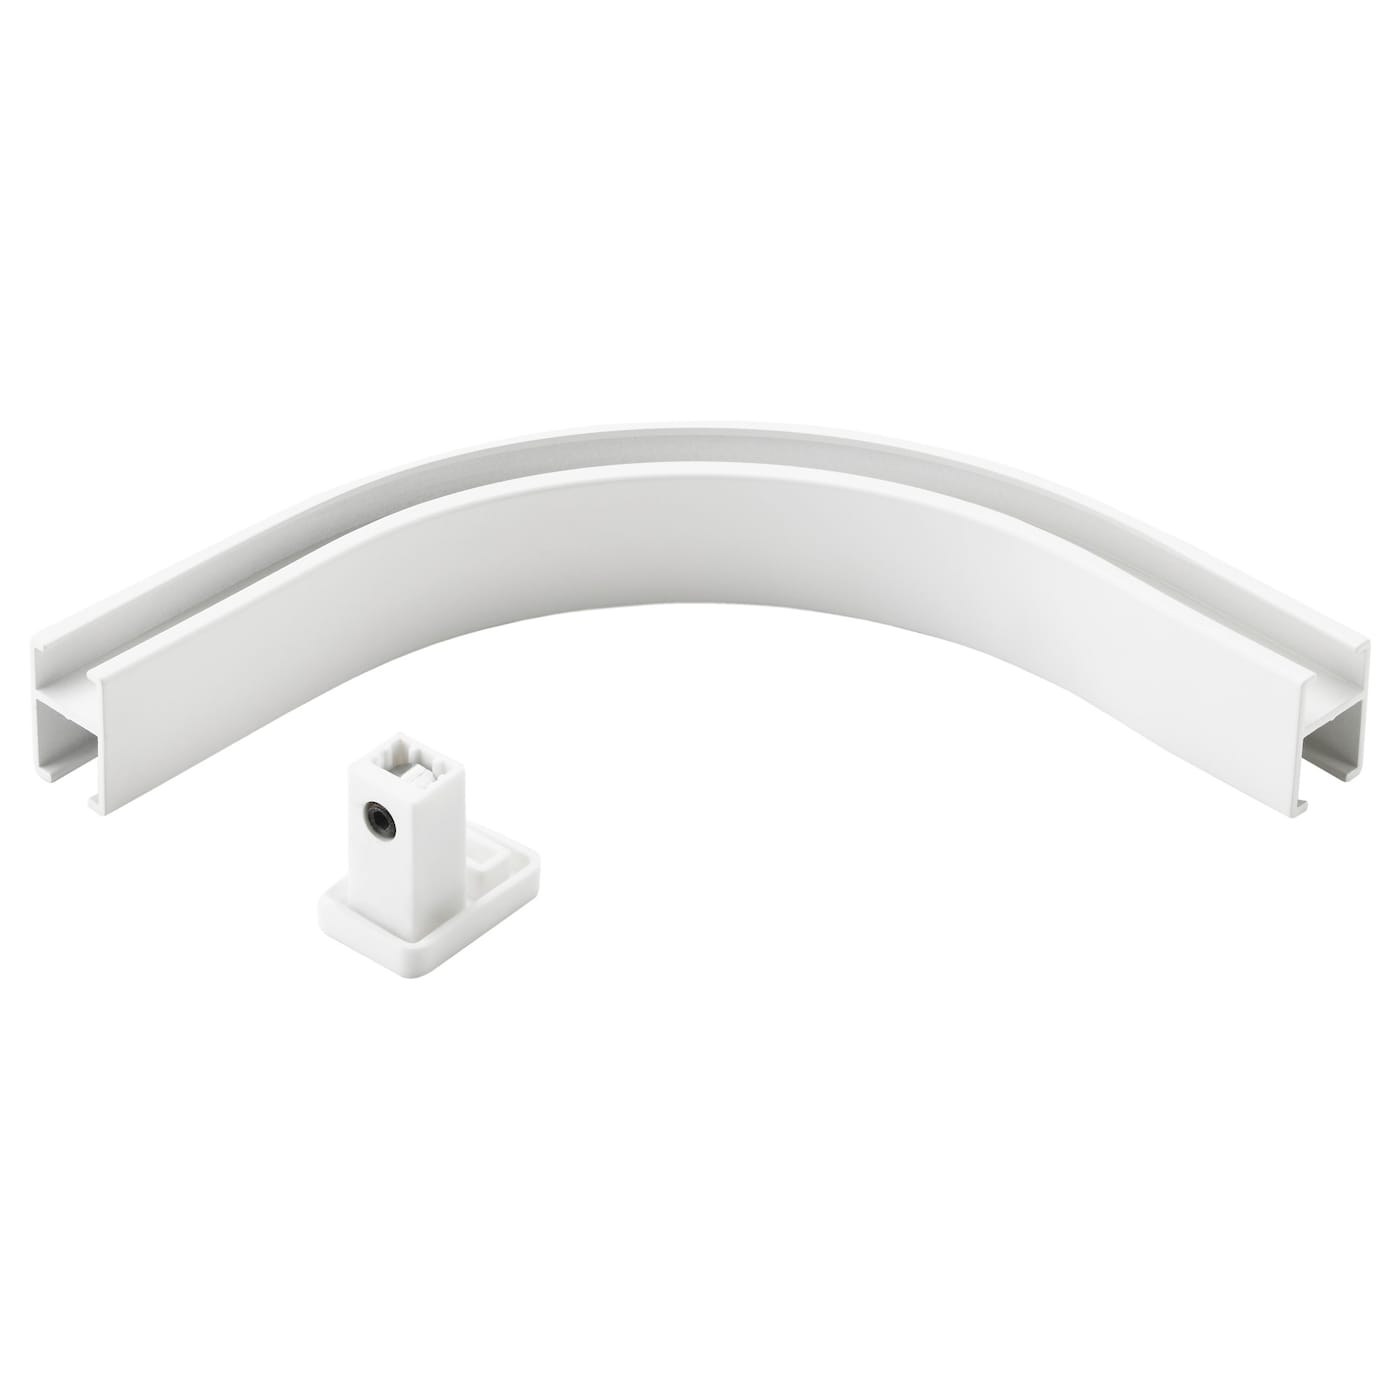 IKEA VIDGA corner piece, single track Makes it possible for curtains to go around corners.